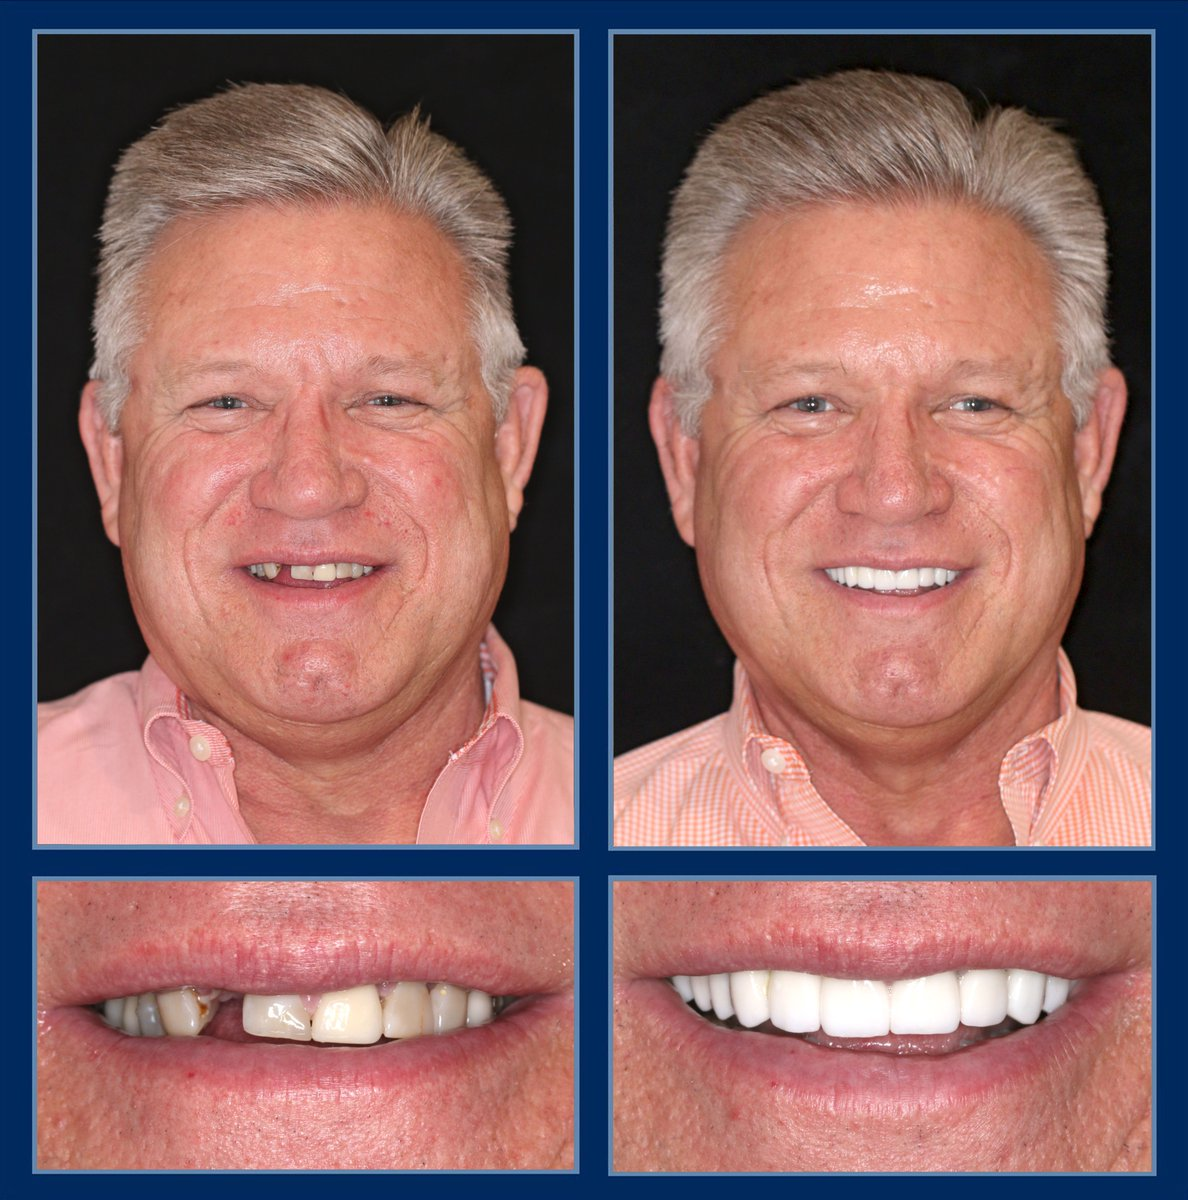 Years of wear and tear can leave behind a smile that is chipped, crooked, misaligned, discolored and yellowing.  Luckily, it doesn't take near that long to correct those common flaws. Just 2 days! http://TheCosmeticDentistsOfAustin.com #CosmeticDentist #SmileMakeover #ReconstructiveDentistry pic.twitter.com/lll2HikBxV